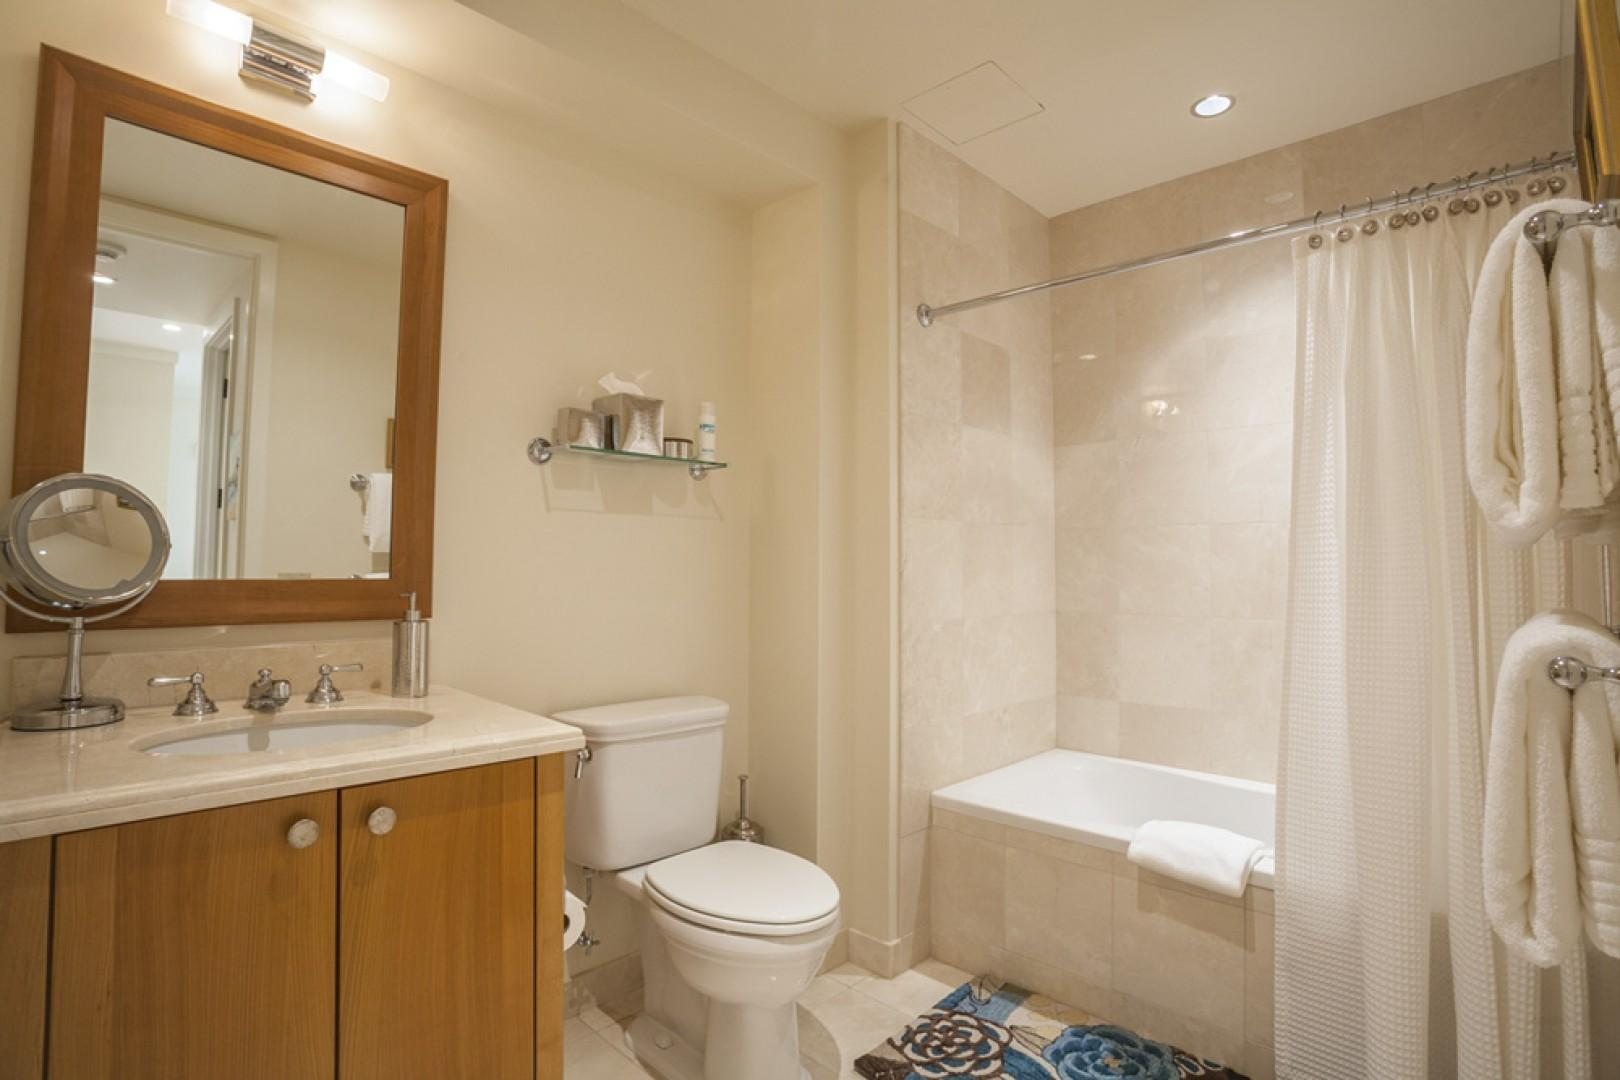 Third bedroom bath, with shower and tub.